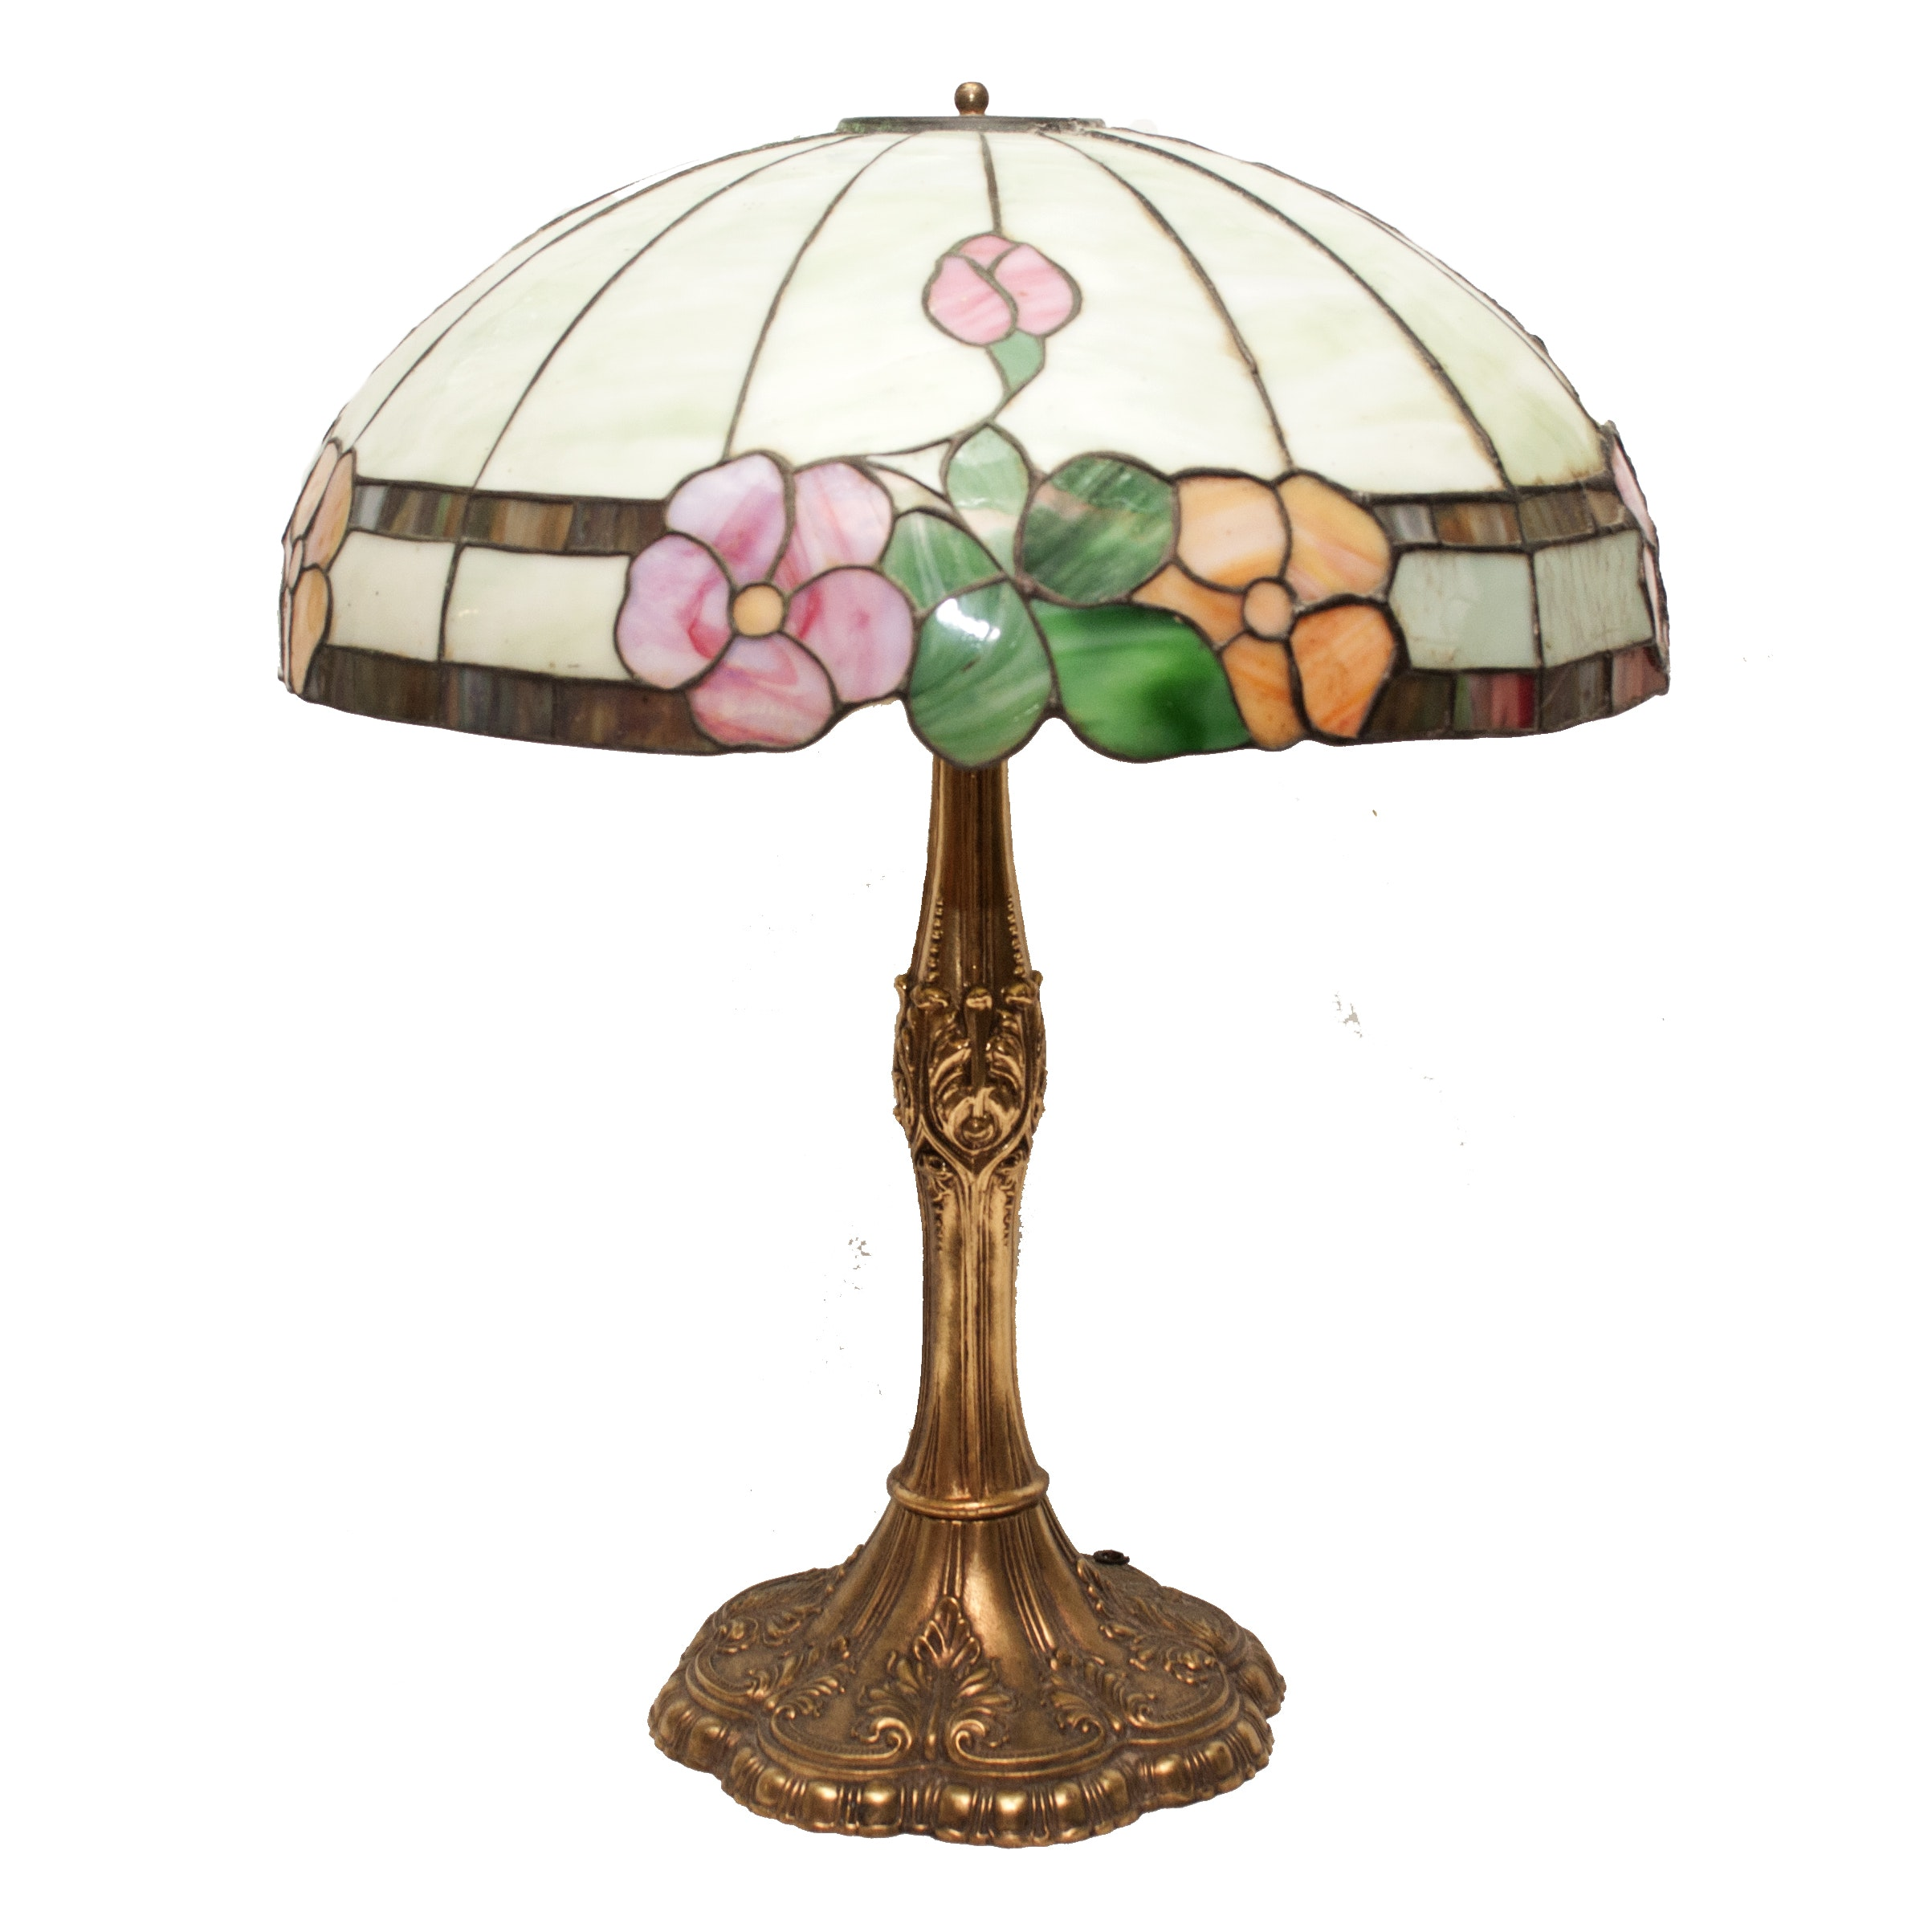 Loevsky & Loevsky Brass Table Lamp with Stained Glass Shade